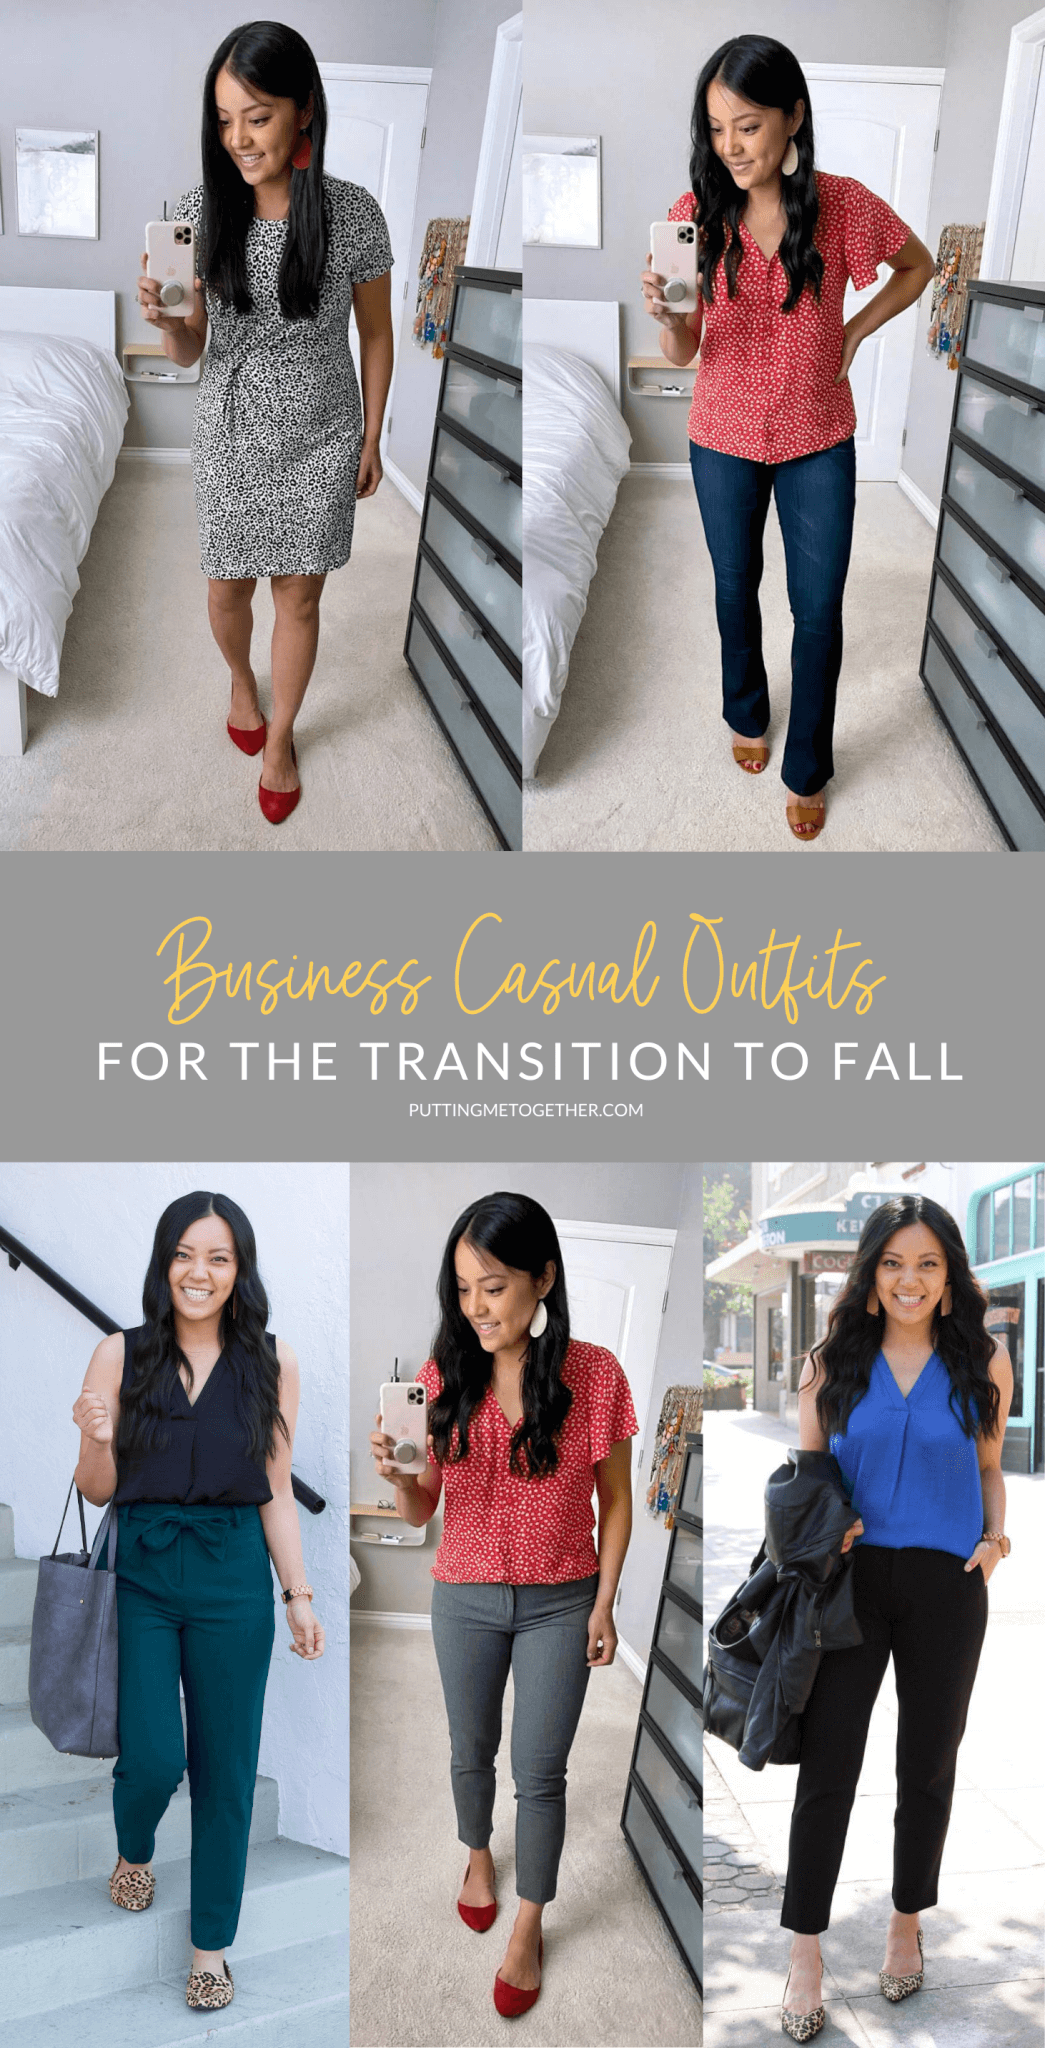 Business Casual Outfits for the Transition to Fall